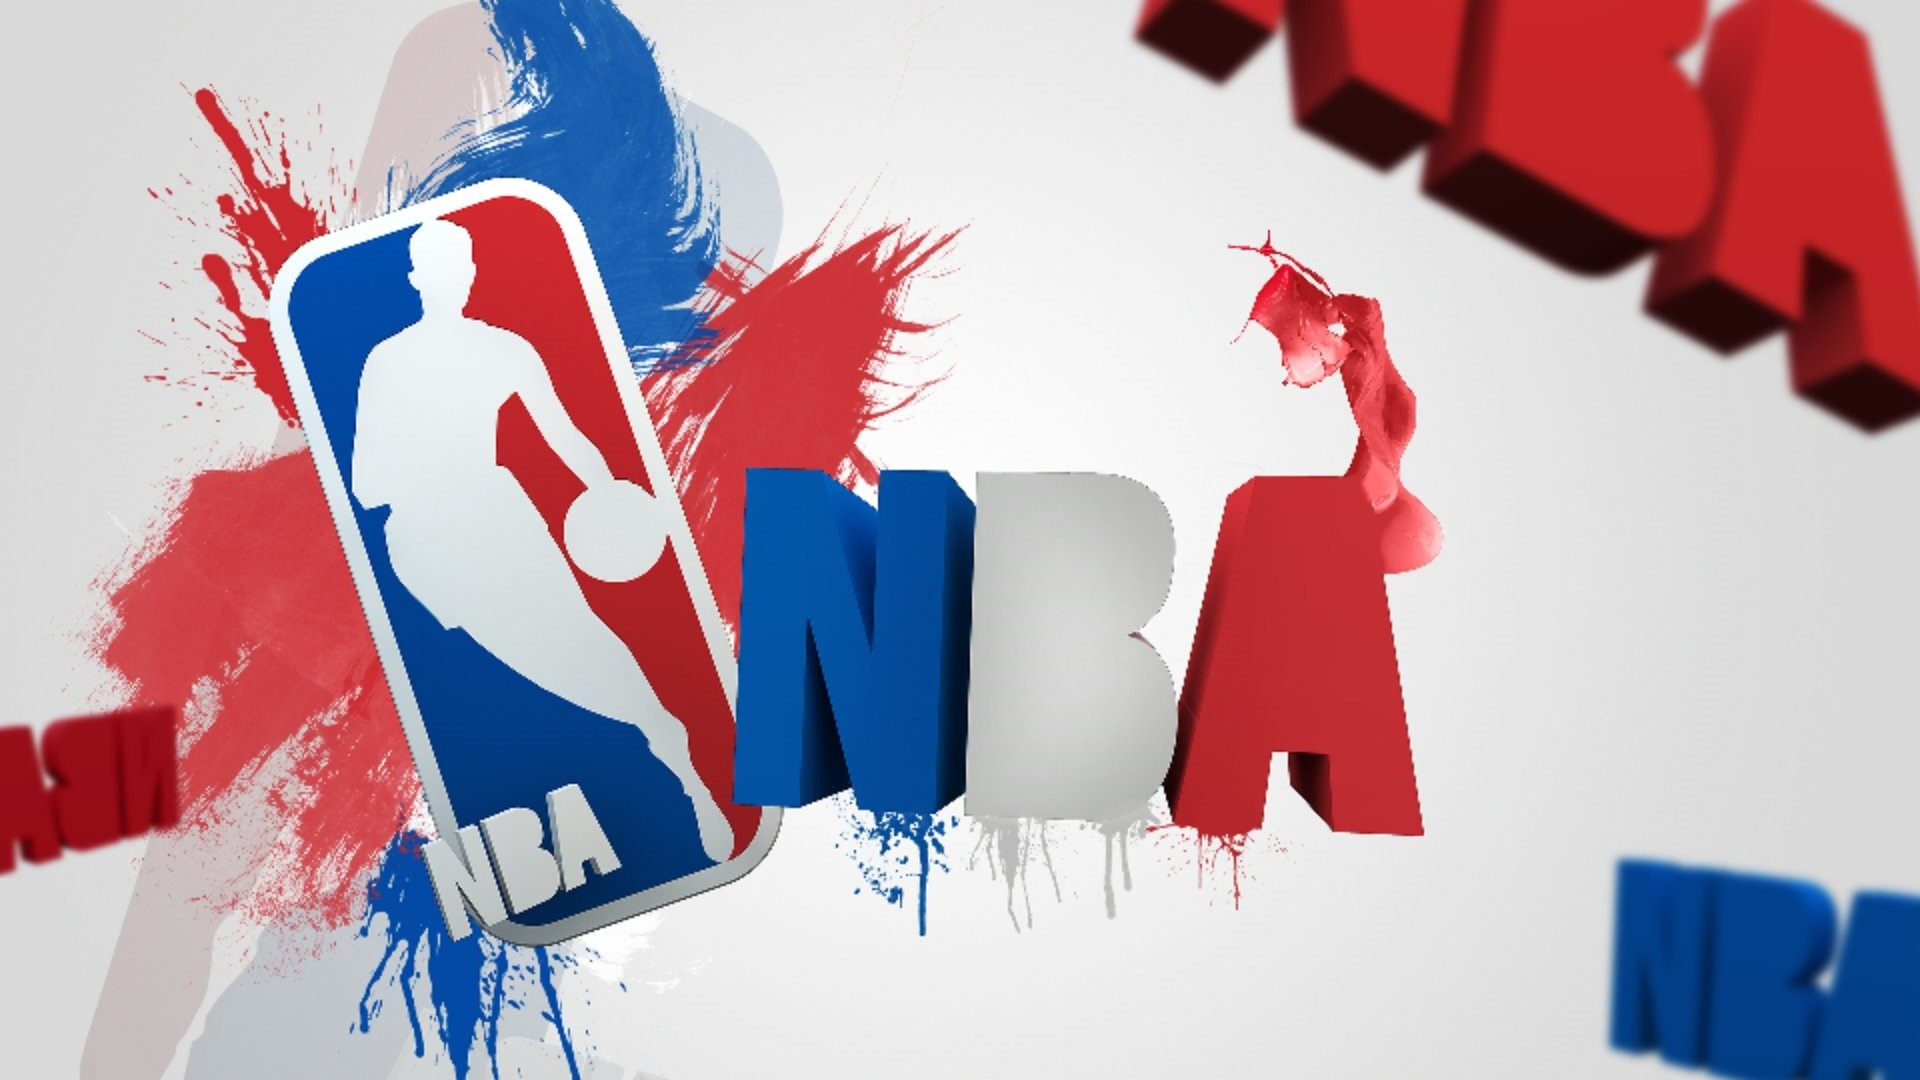 50 Best NBA Basketball Wallpapers